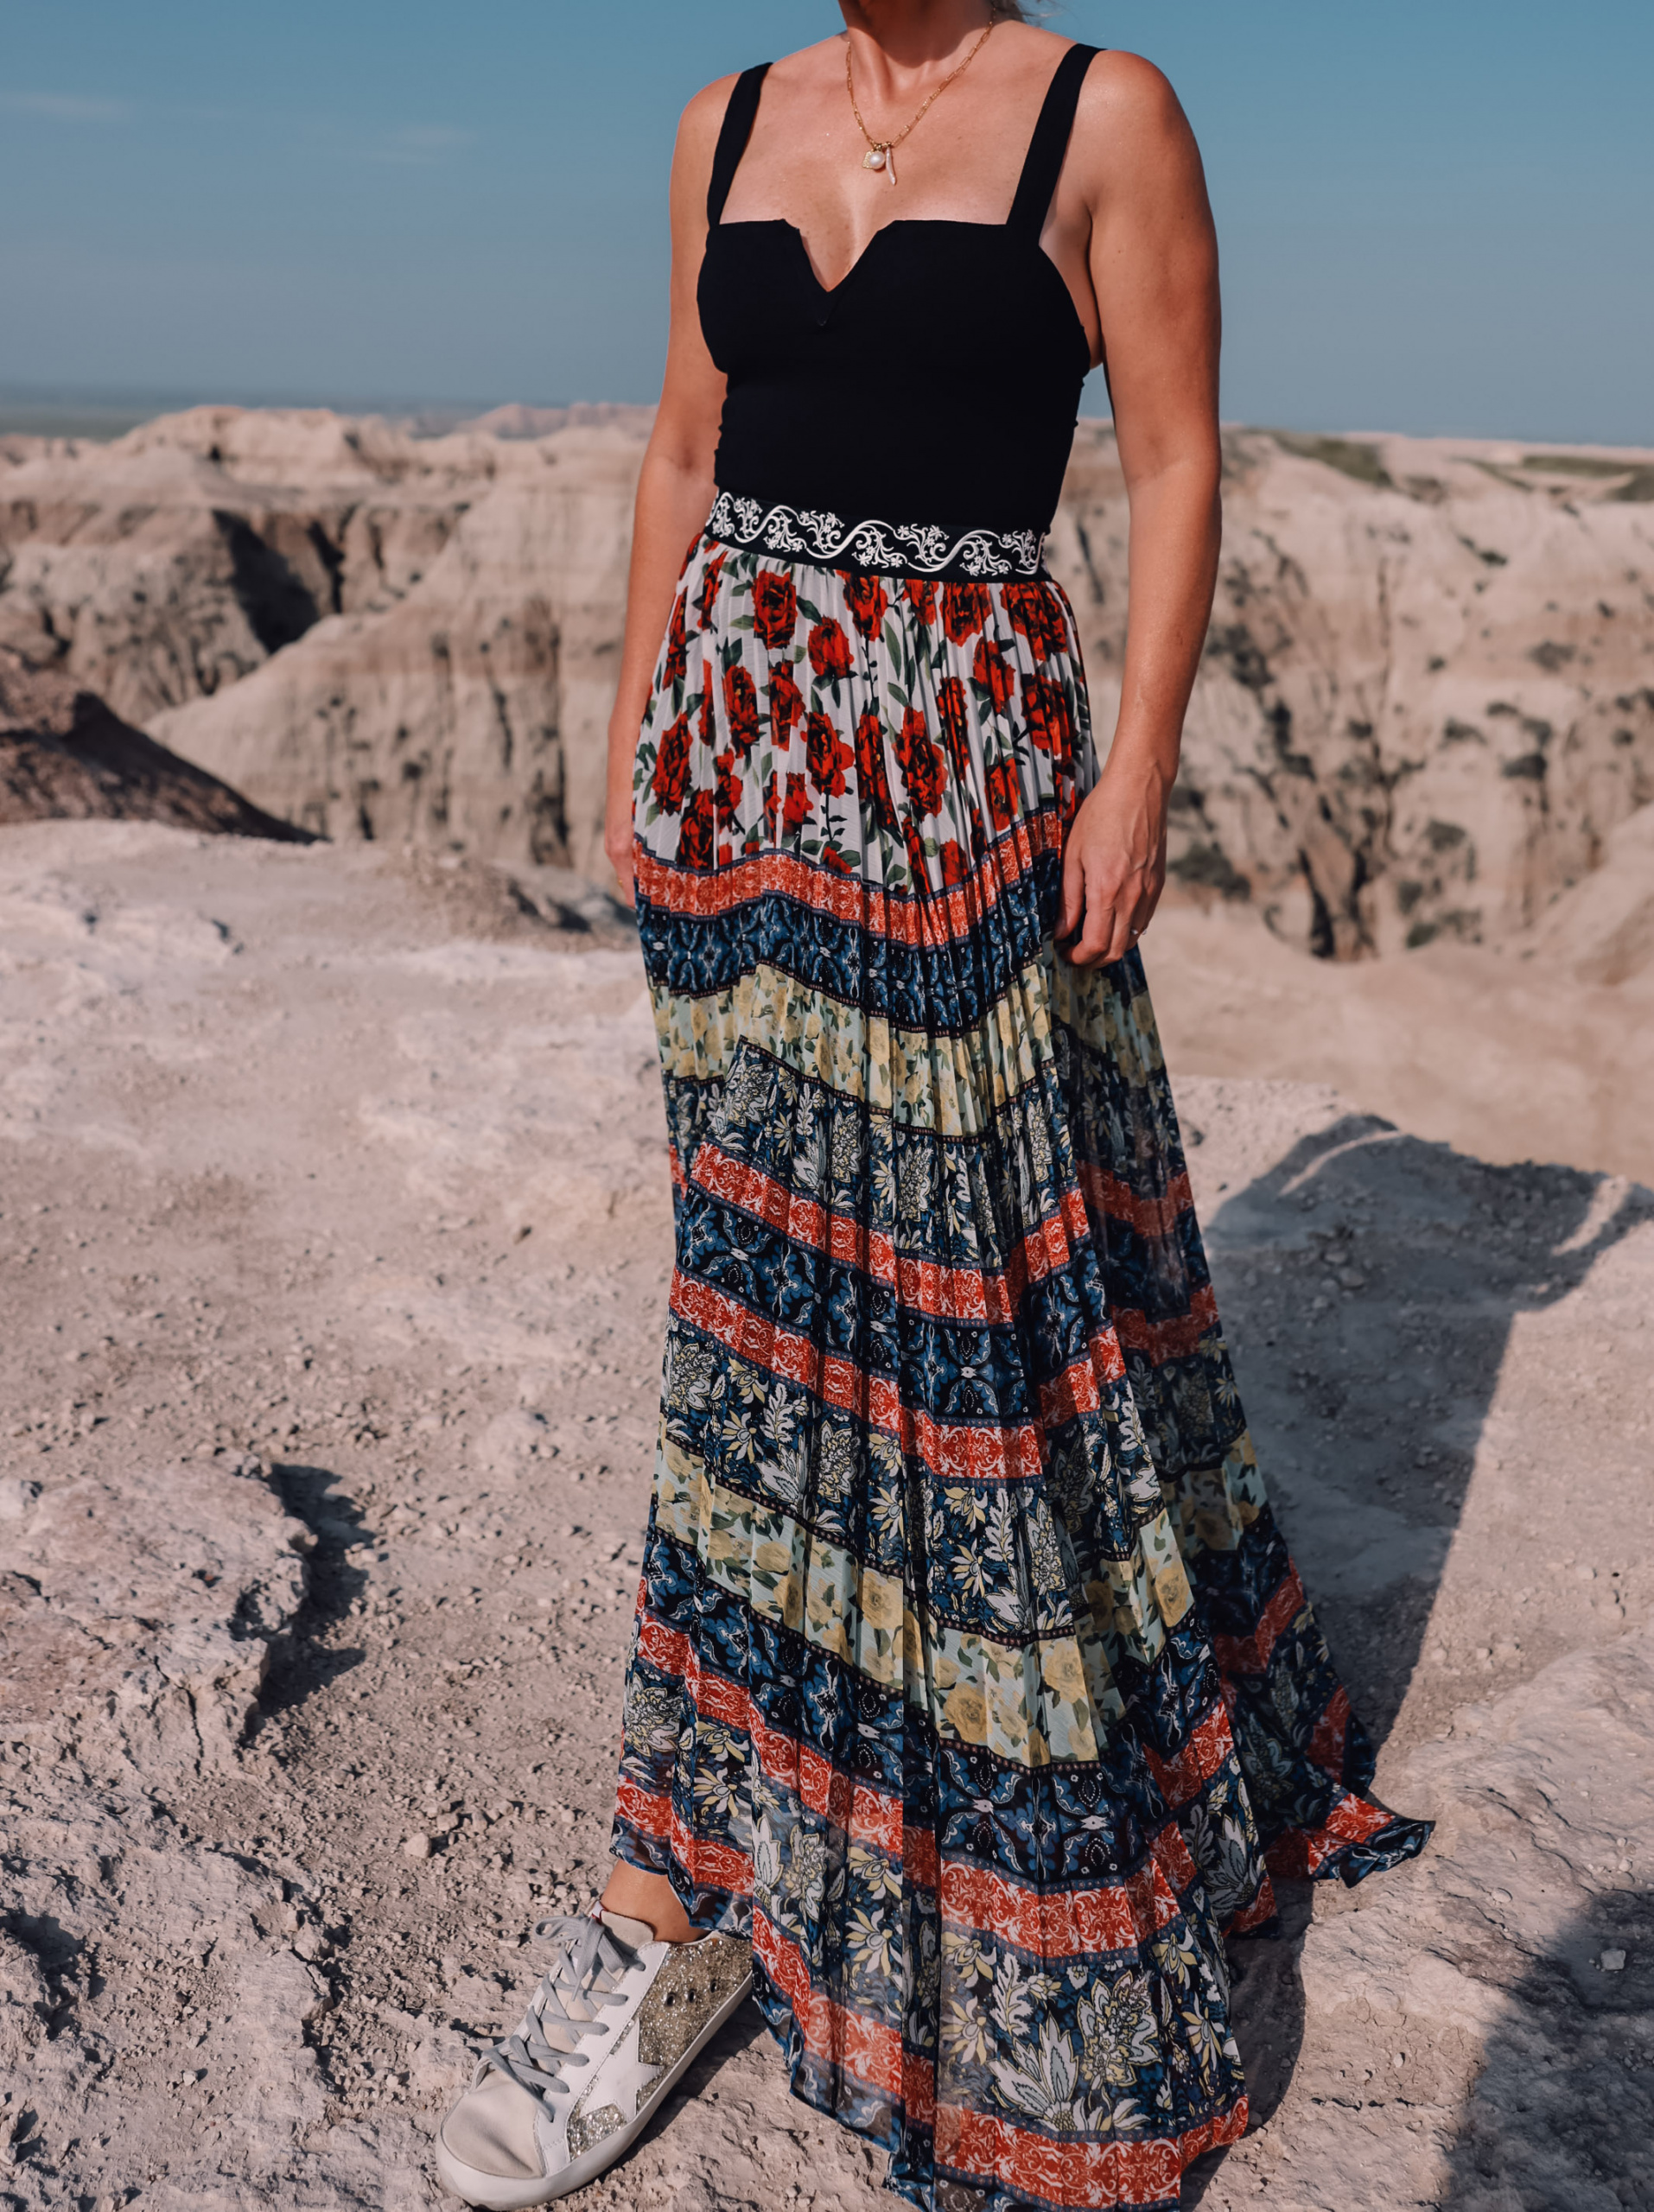 maxi skirts, maxi skirts over 40, printed pleatd maxi skirt, alice + olivia maxi skirt, erin busbee, how to wear maxi skirts, free people wire v-neck bodysuit